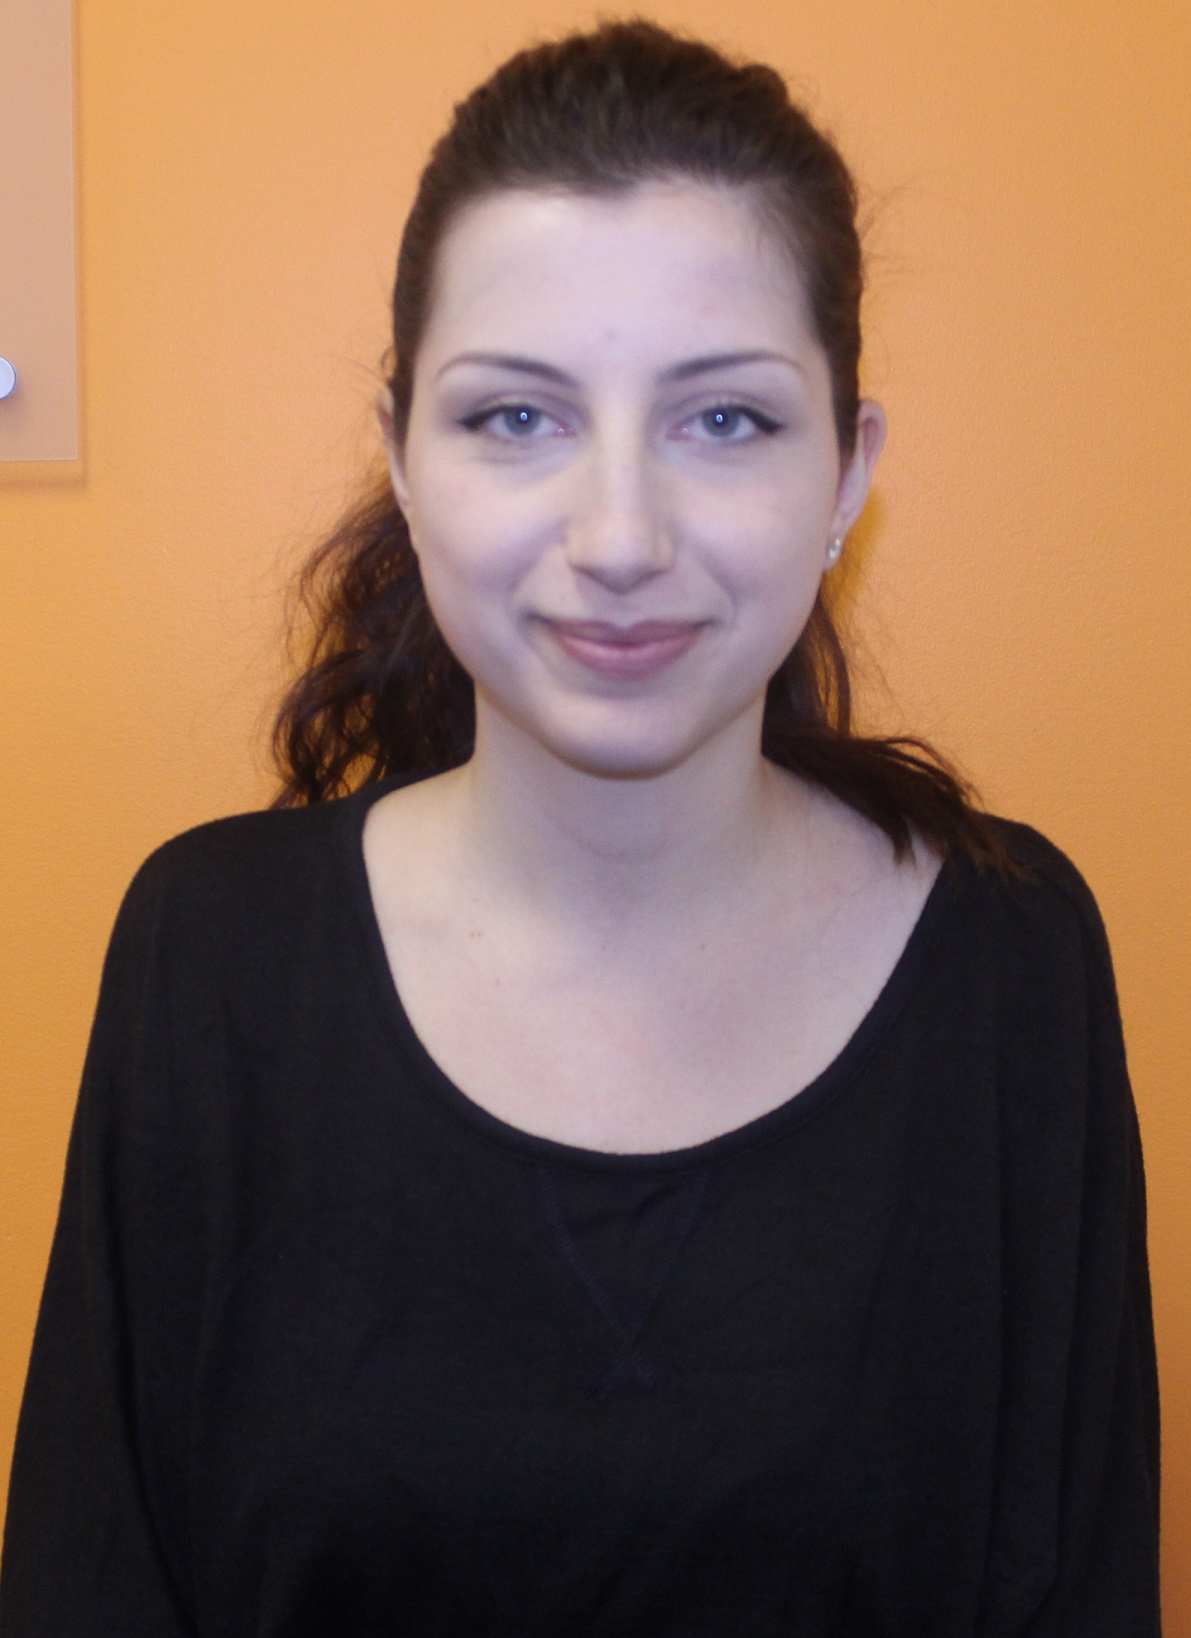 Melanie Cetrangolo from Italy  came to study English and French at EC Montreal